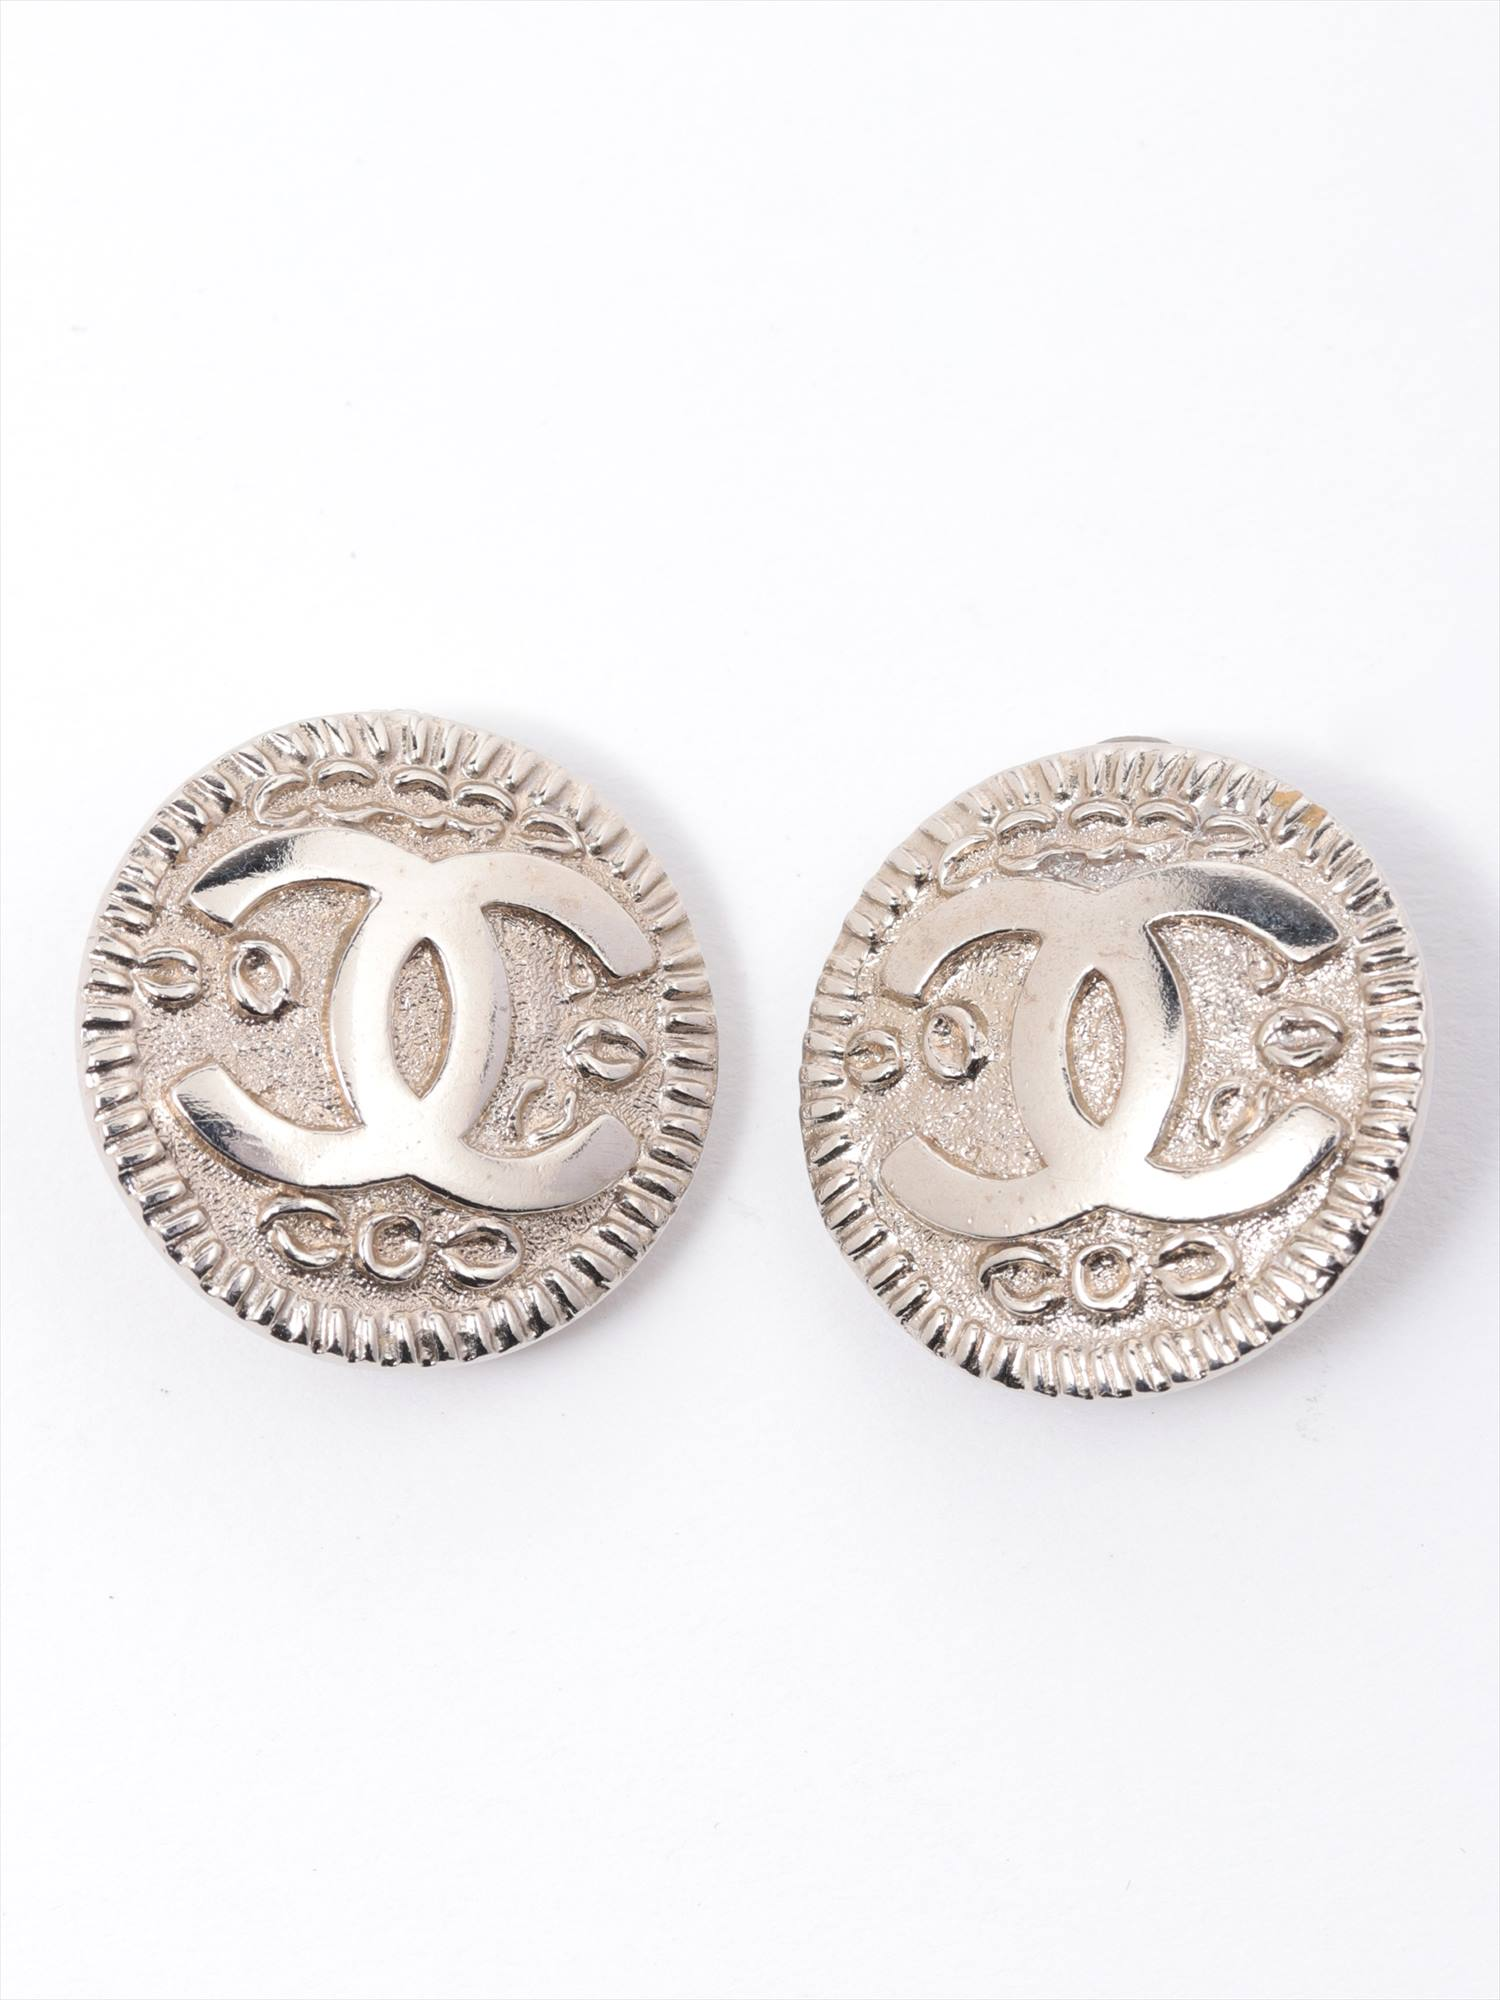 [Used goods] Chanel earrings (for both ears) Brass Silver Round